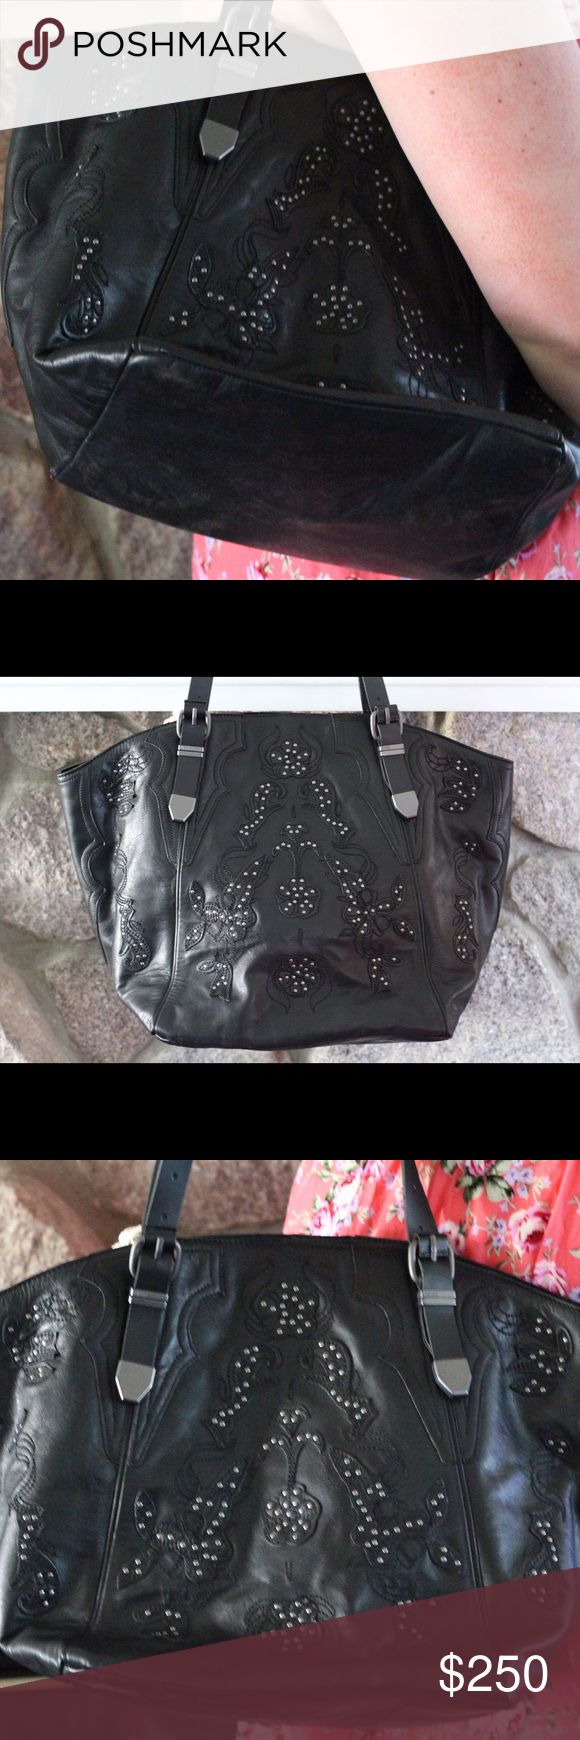 """Diesel Bag - Hold for Kerry NWT - This must have Diesel purse is perfect for your accessory collection. The floral studded accents make it unique. Includes purse bag. Originally $320 - MAKE ME AN OFFER!  Approximately 16"""" wide x 12"""" tall. Diesel Bags Shoulder Bags"""